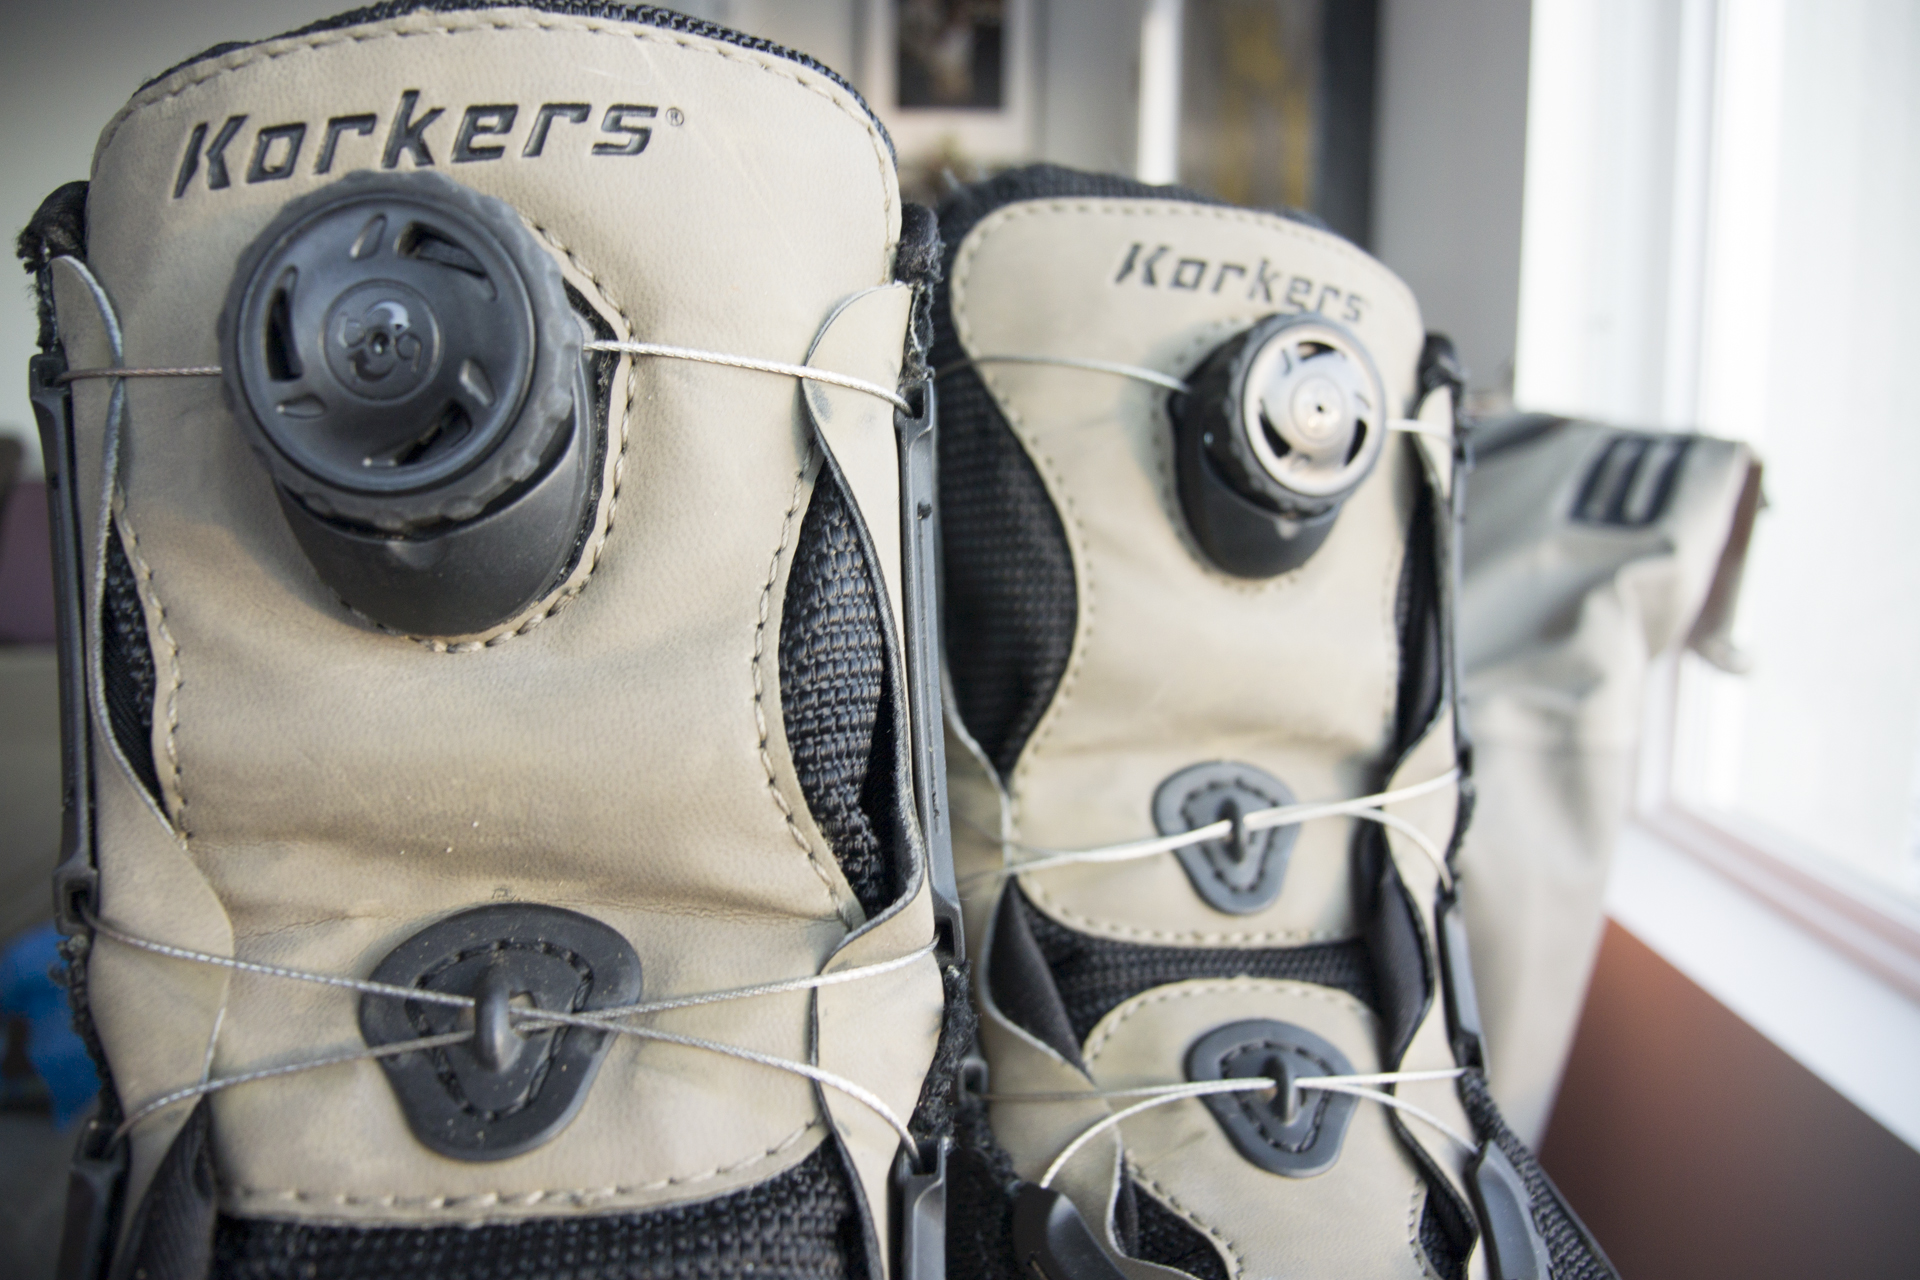 Korkers Newest Boot for 2014